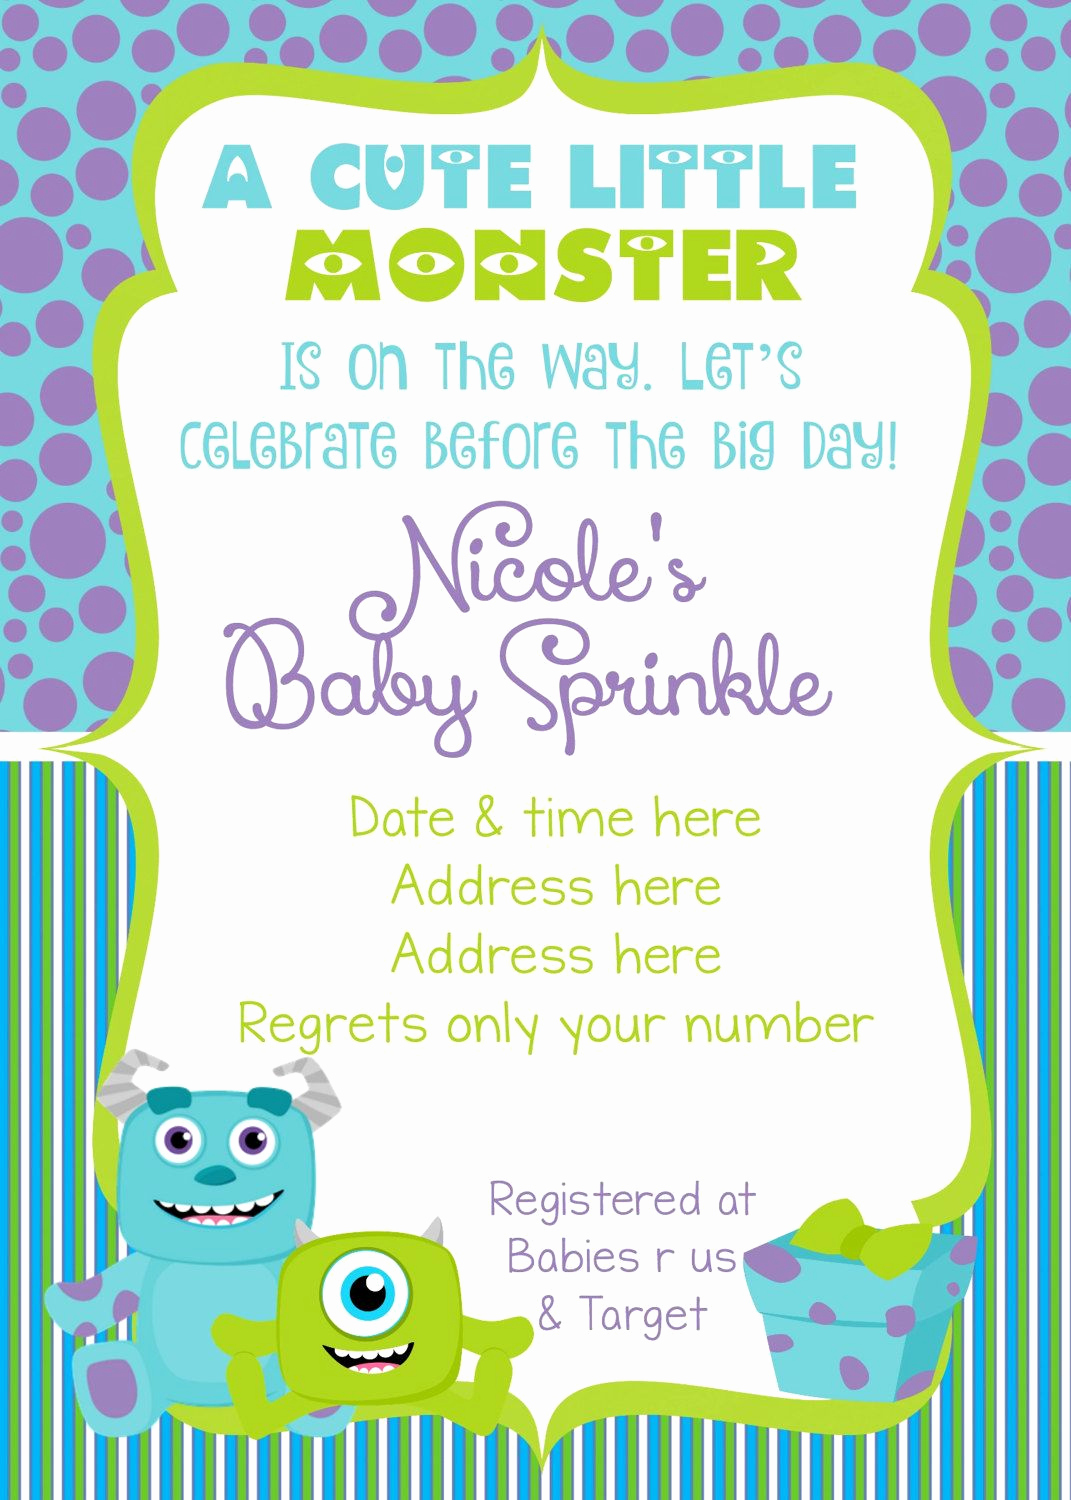 Monsters Inc Baby Shower Invitation Inspirational Monsters Inc Baby Shower Invitation Monsters Inc Baby